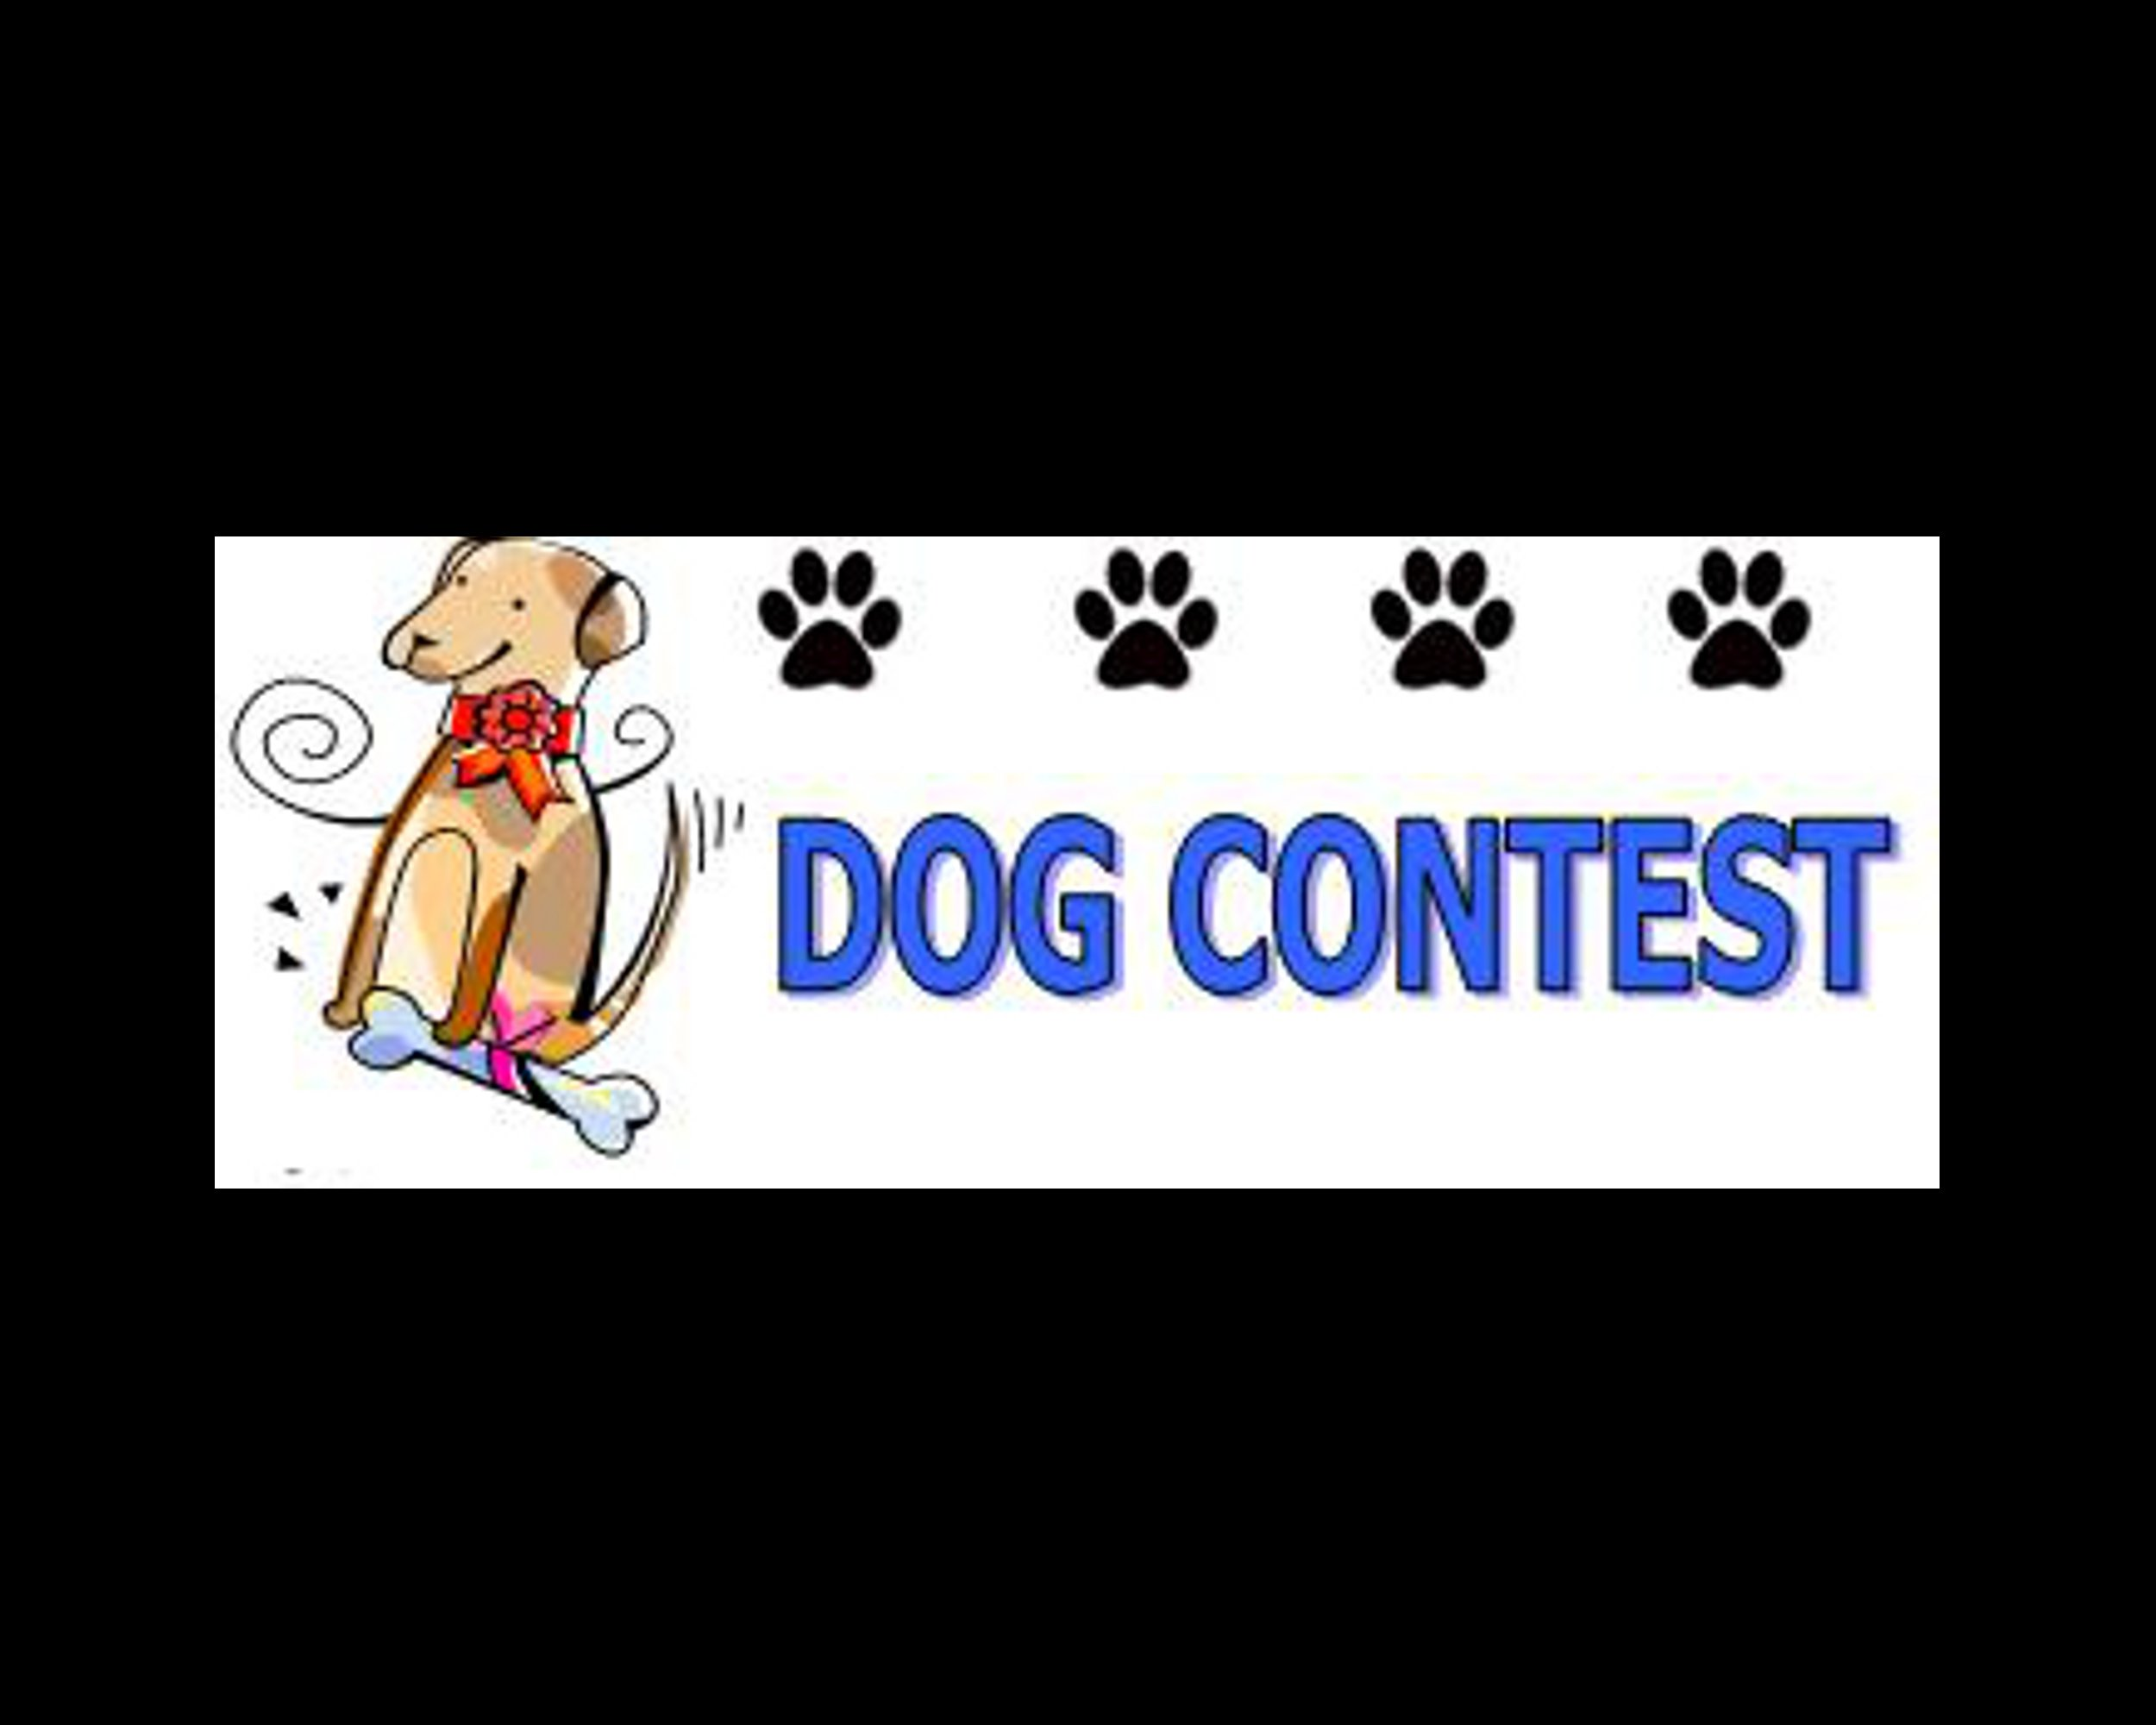 Dog Contest this Saturday, August 14th, 2010